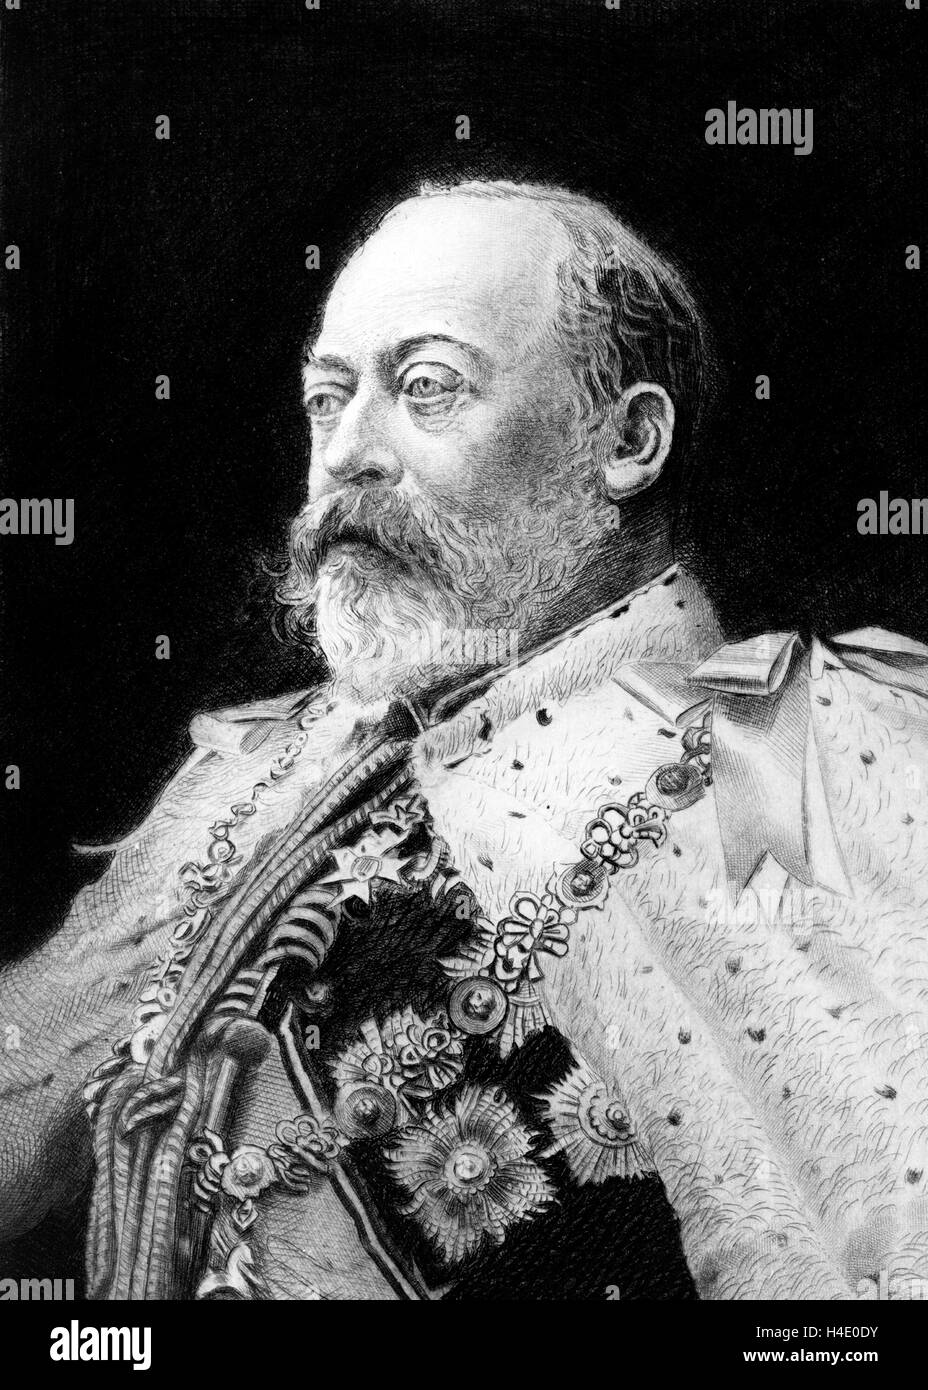 Edward VII. Portrait of King Edward VII of the United Kingdom (1841-1910), who reigned from 1901 until his death Stock Photo